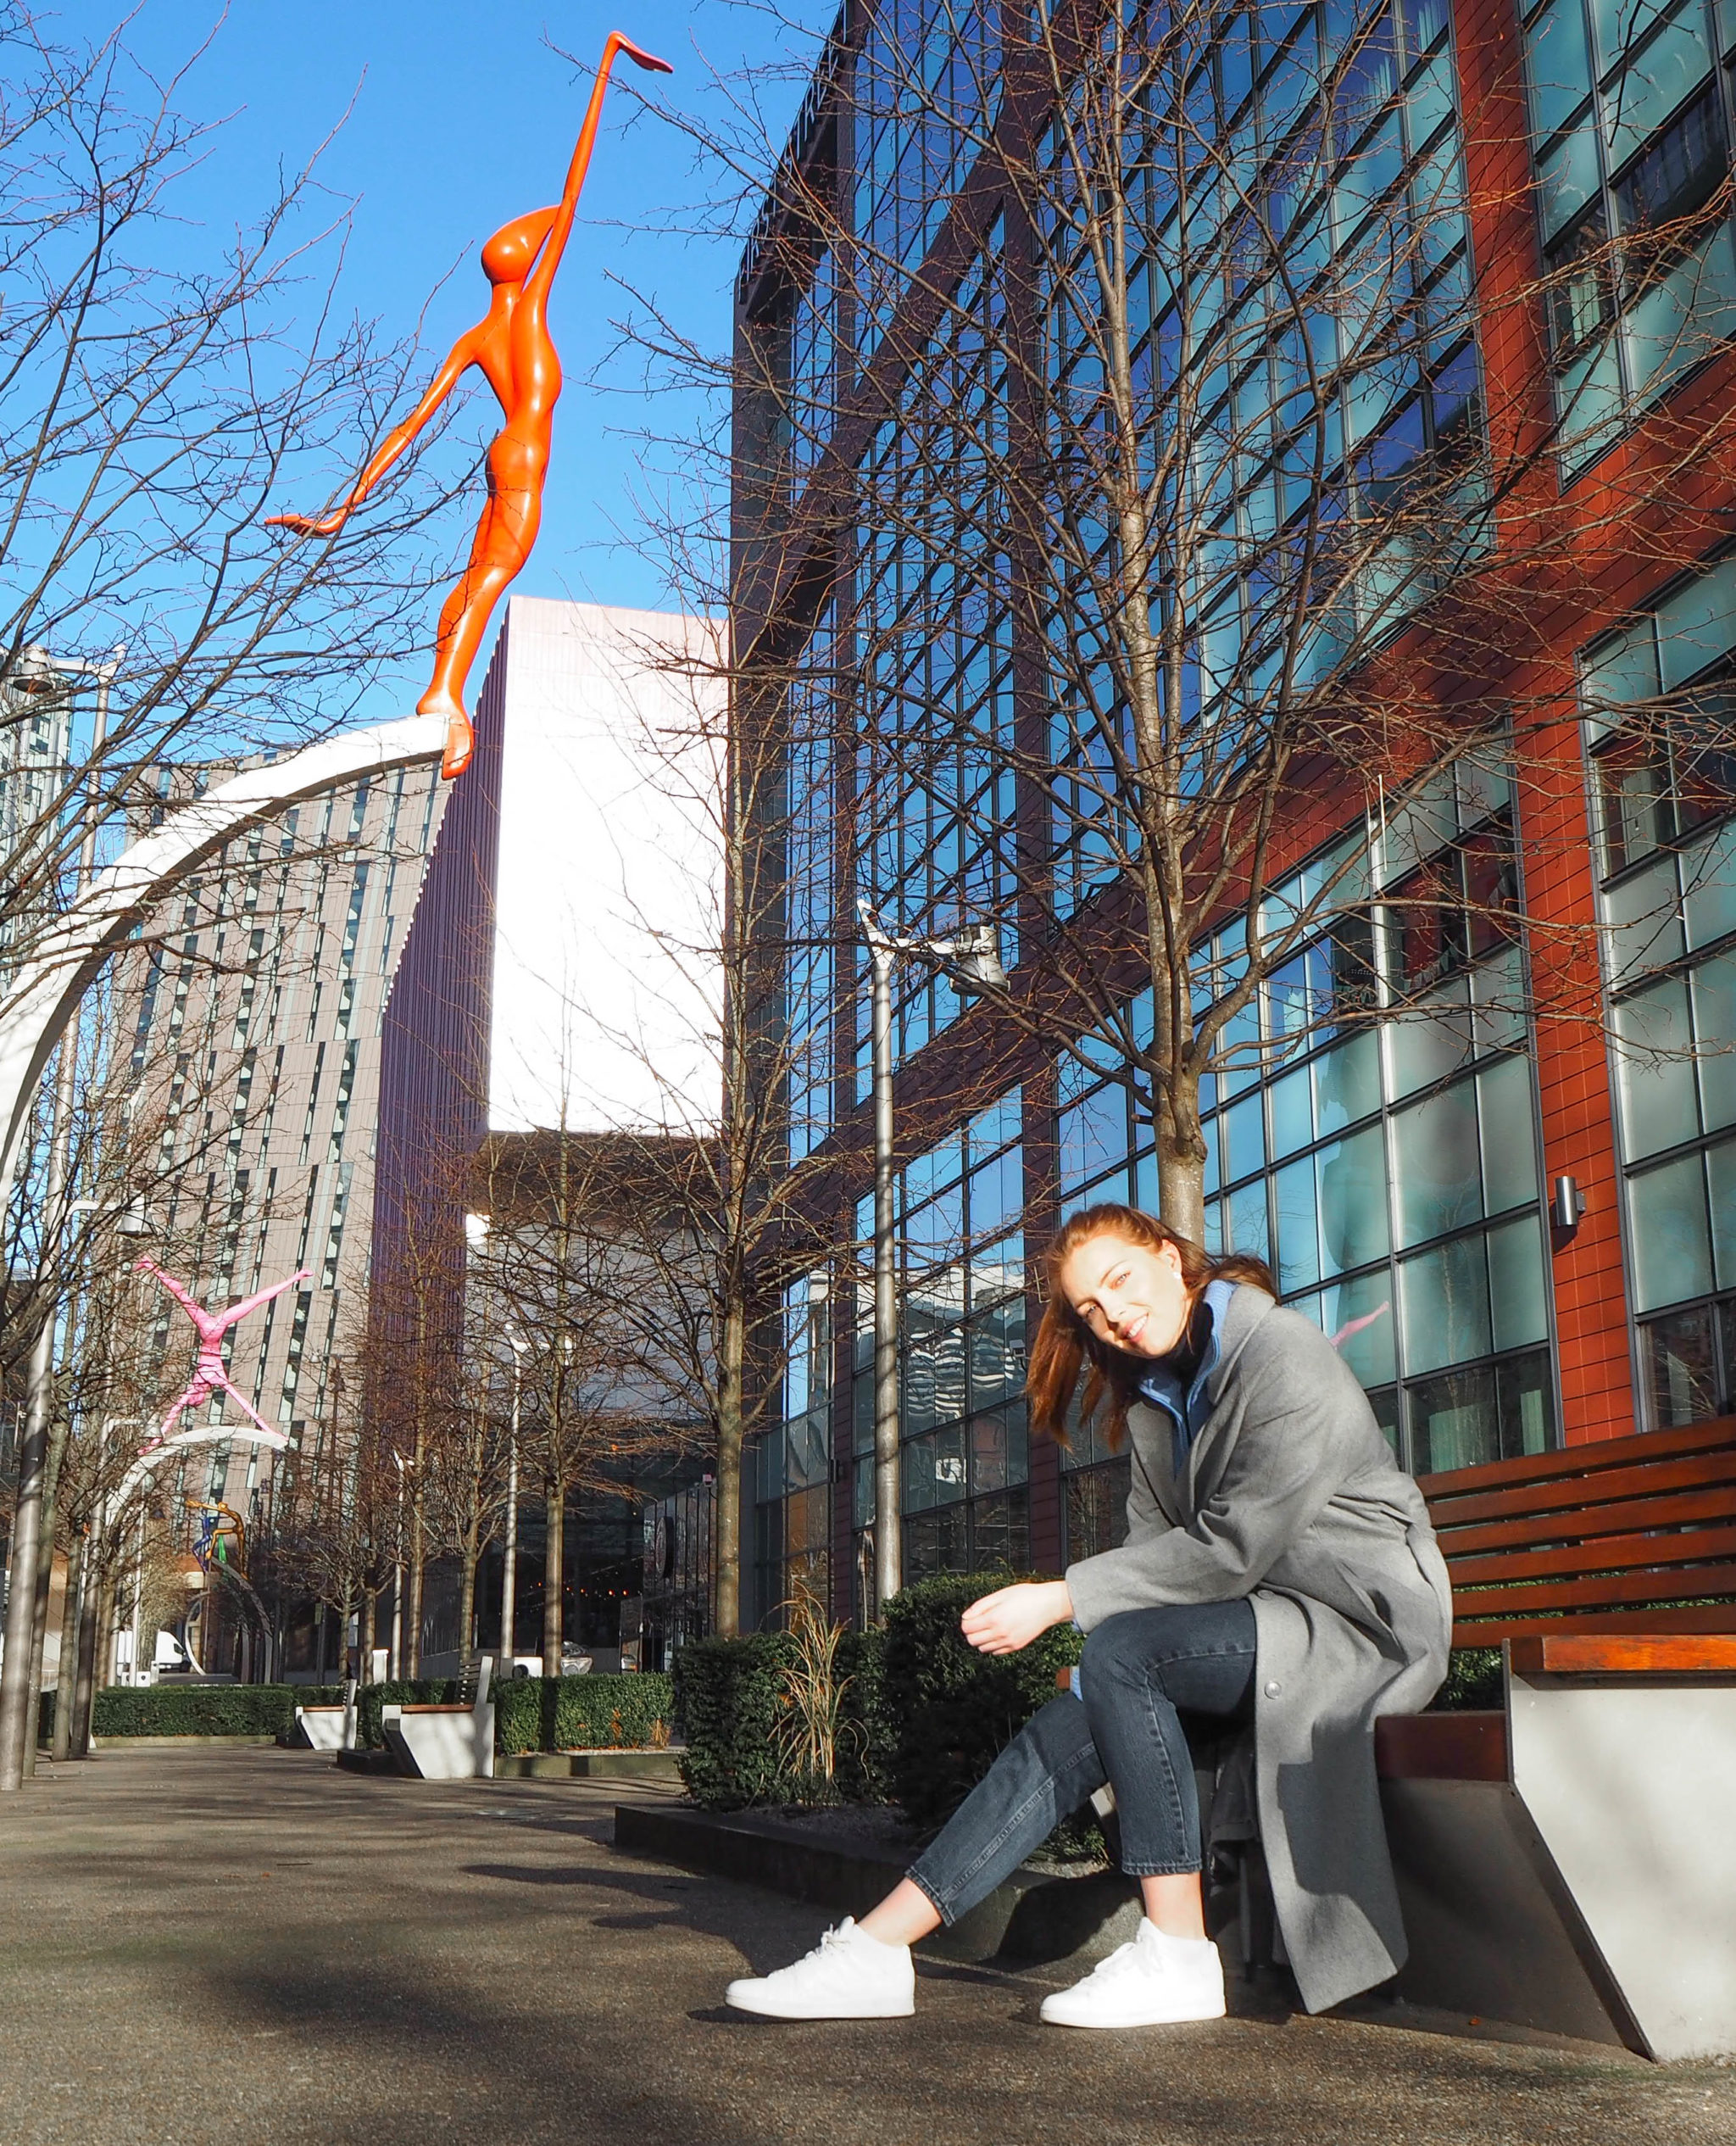 girl sitting on bench wearing long grey coat and white trainers